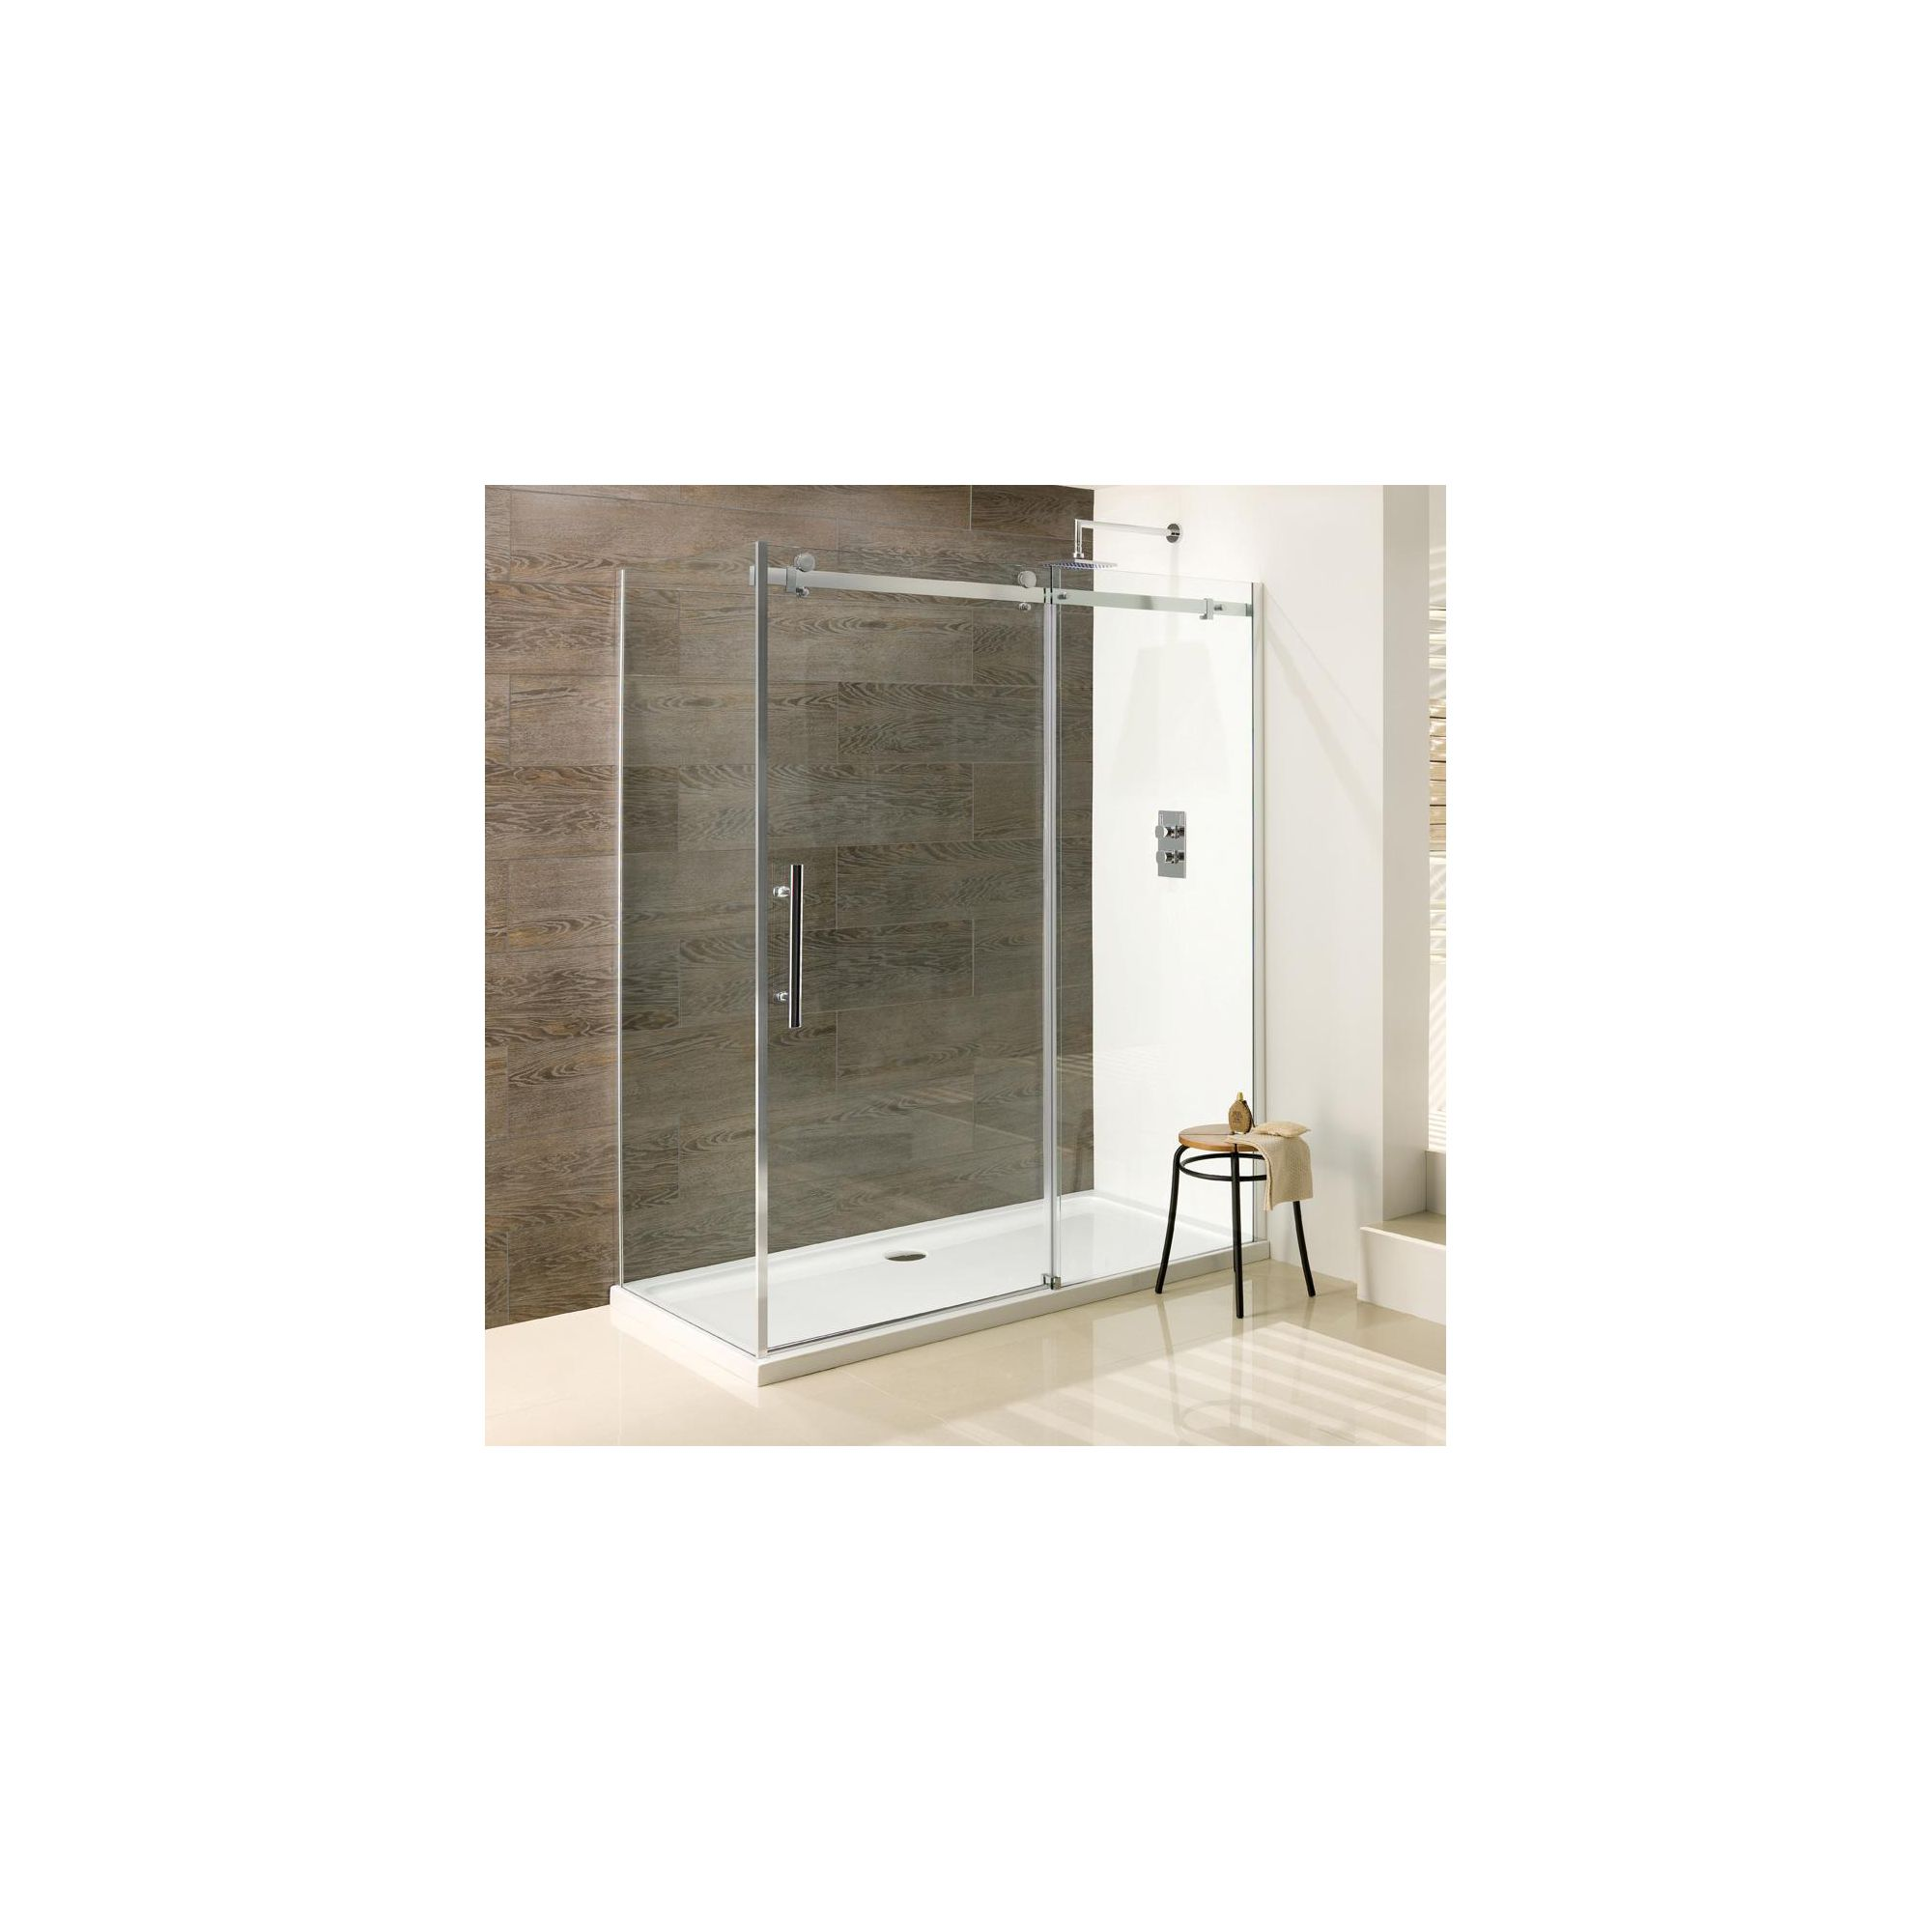 Duchy Deluxe Silver Sliding Door Shower Enclosure with Side Panel 1700mm x 800mm (Complete with Tray), 10mm Glass at Tesco Direct